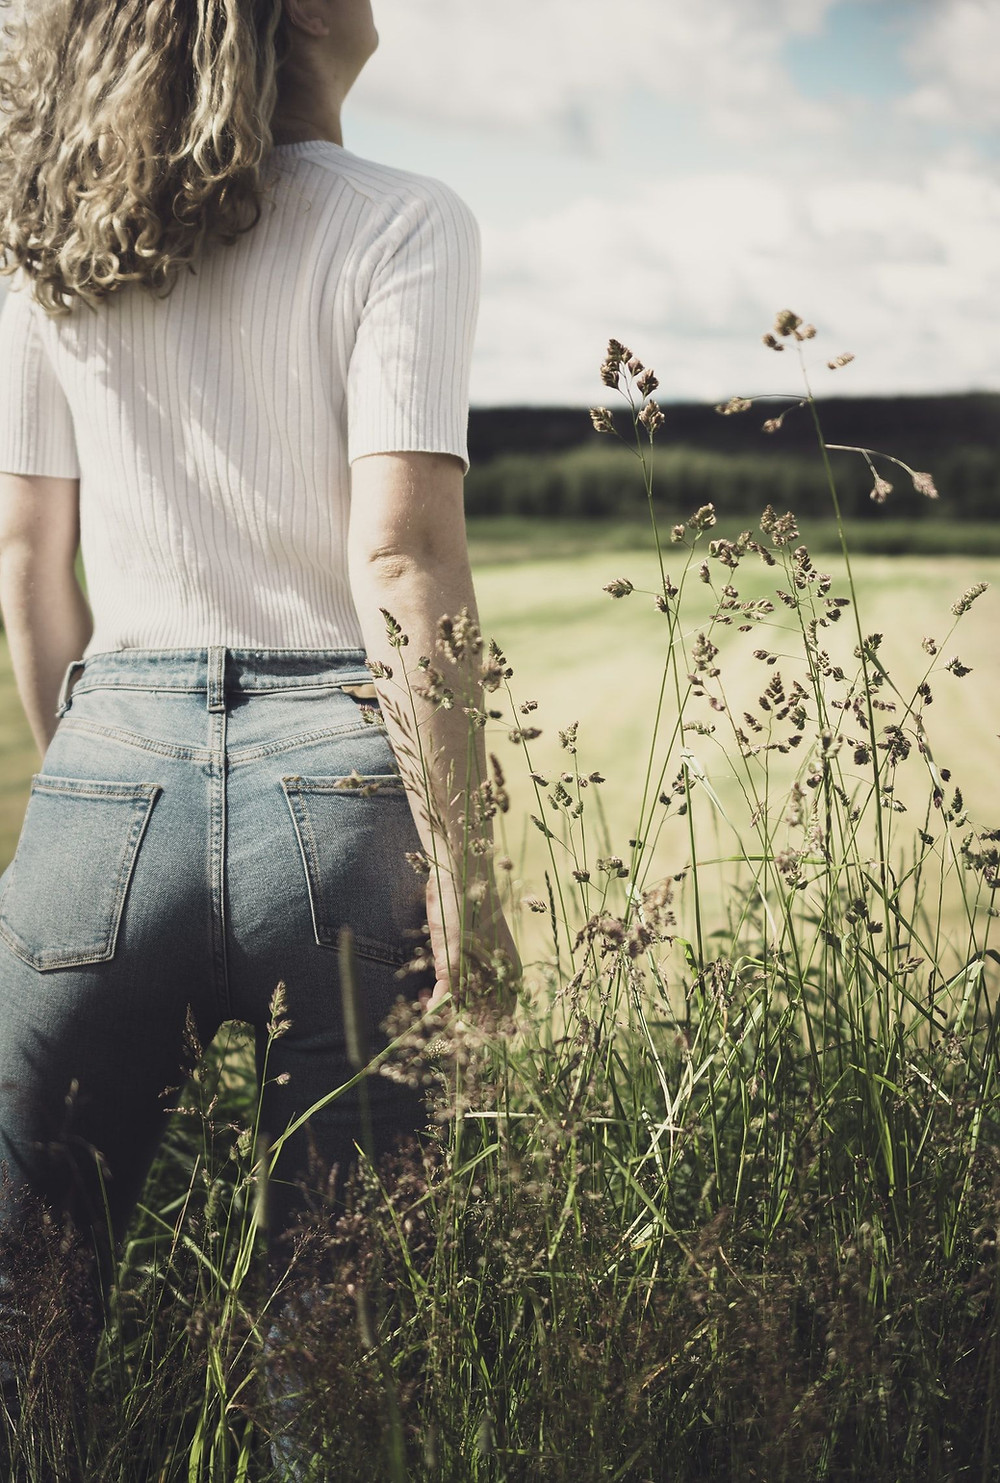 Person In White, Vertically Ribbed Sweater-Shirt And Pale Blue Jeans Faces Away From The Camera, Wavy Brown Blond Hair Touches Squared Shoulders In A Determined Stance As If Refusing Something Behind Them, Amidst Tall, Seed-Topped Grasslands